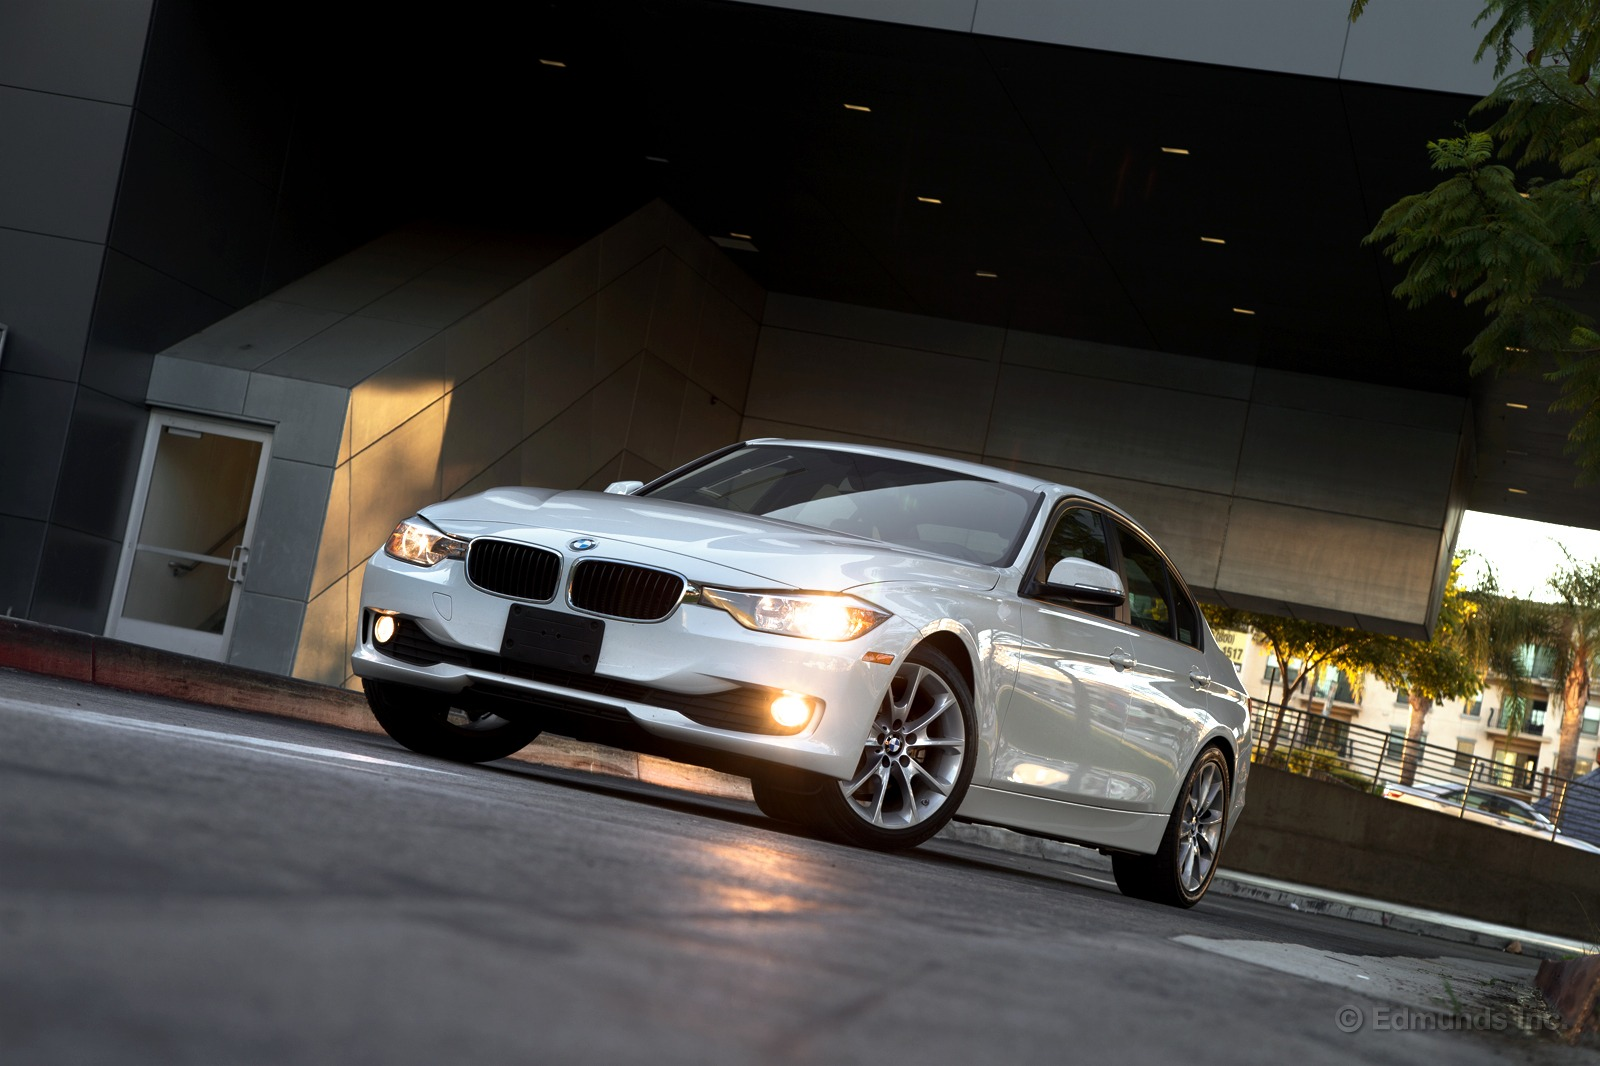 2014 Bmw F30 320i Review By Edmunds Com Autoevolution